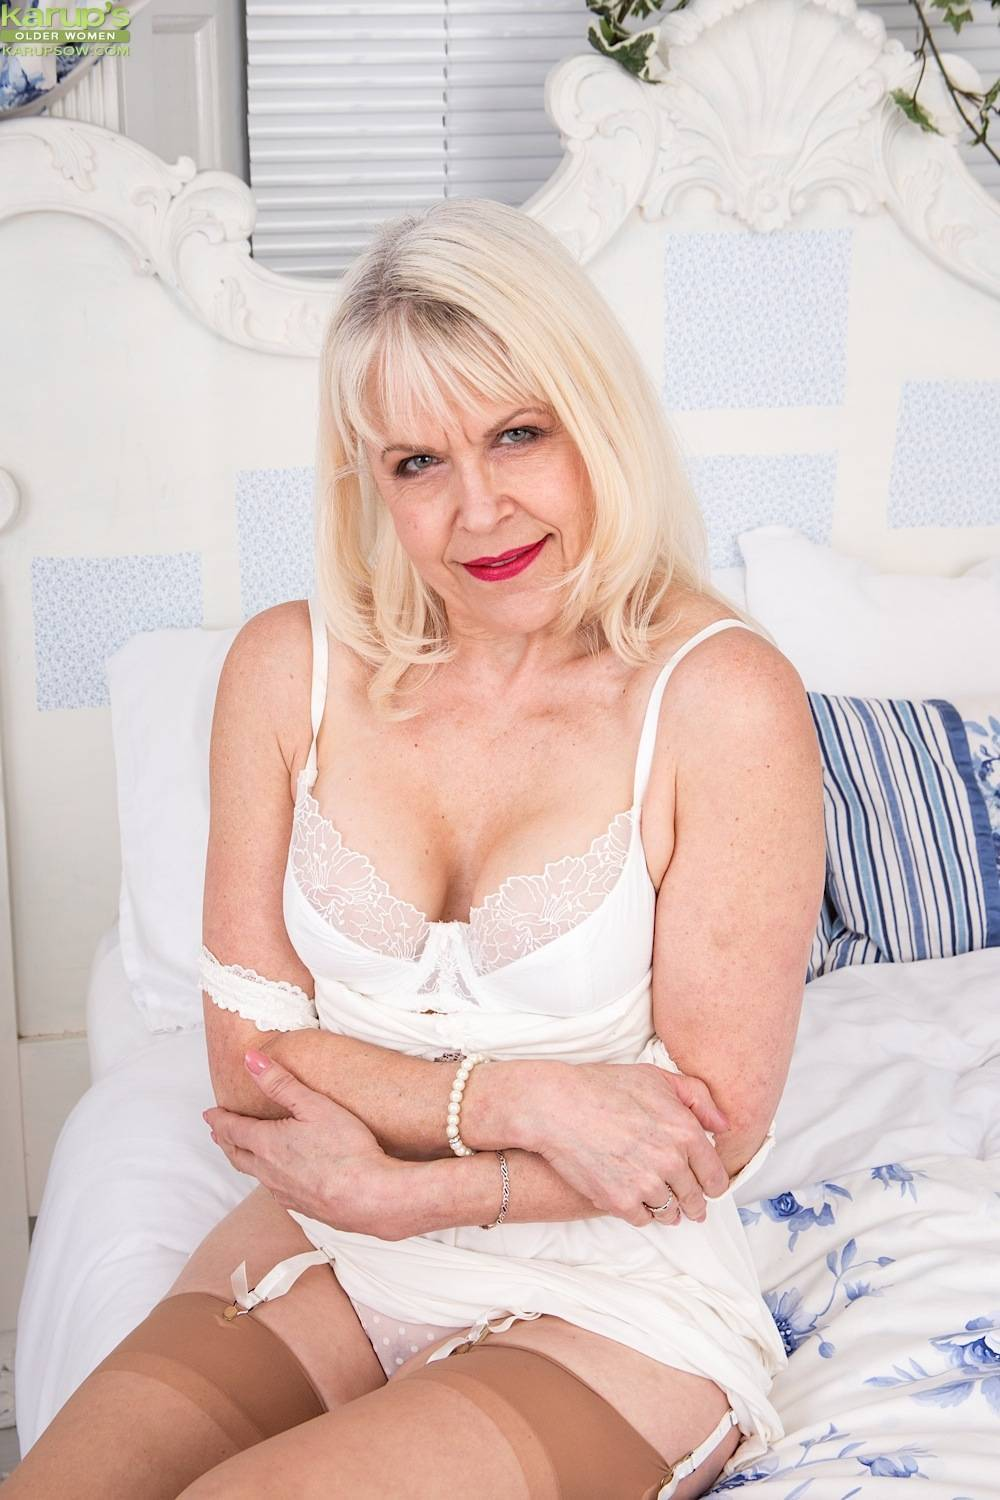 Busty granny Margaret Holt naked in beige stockings at Karupsow